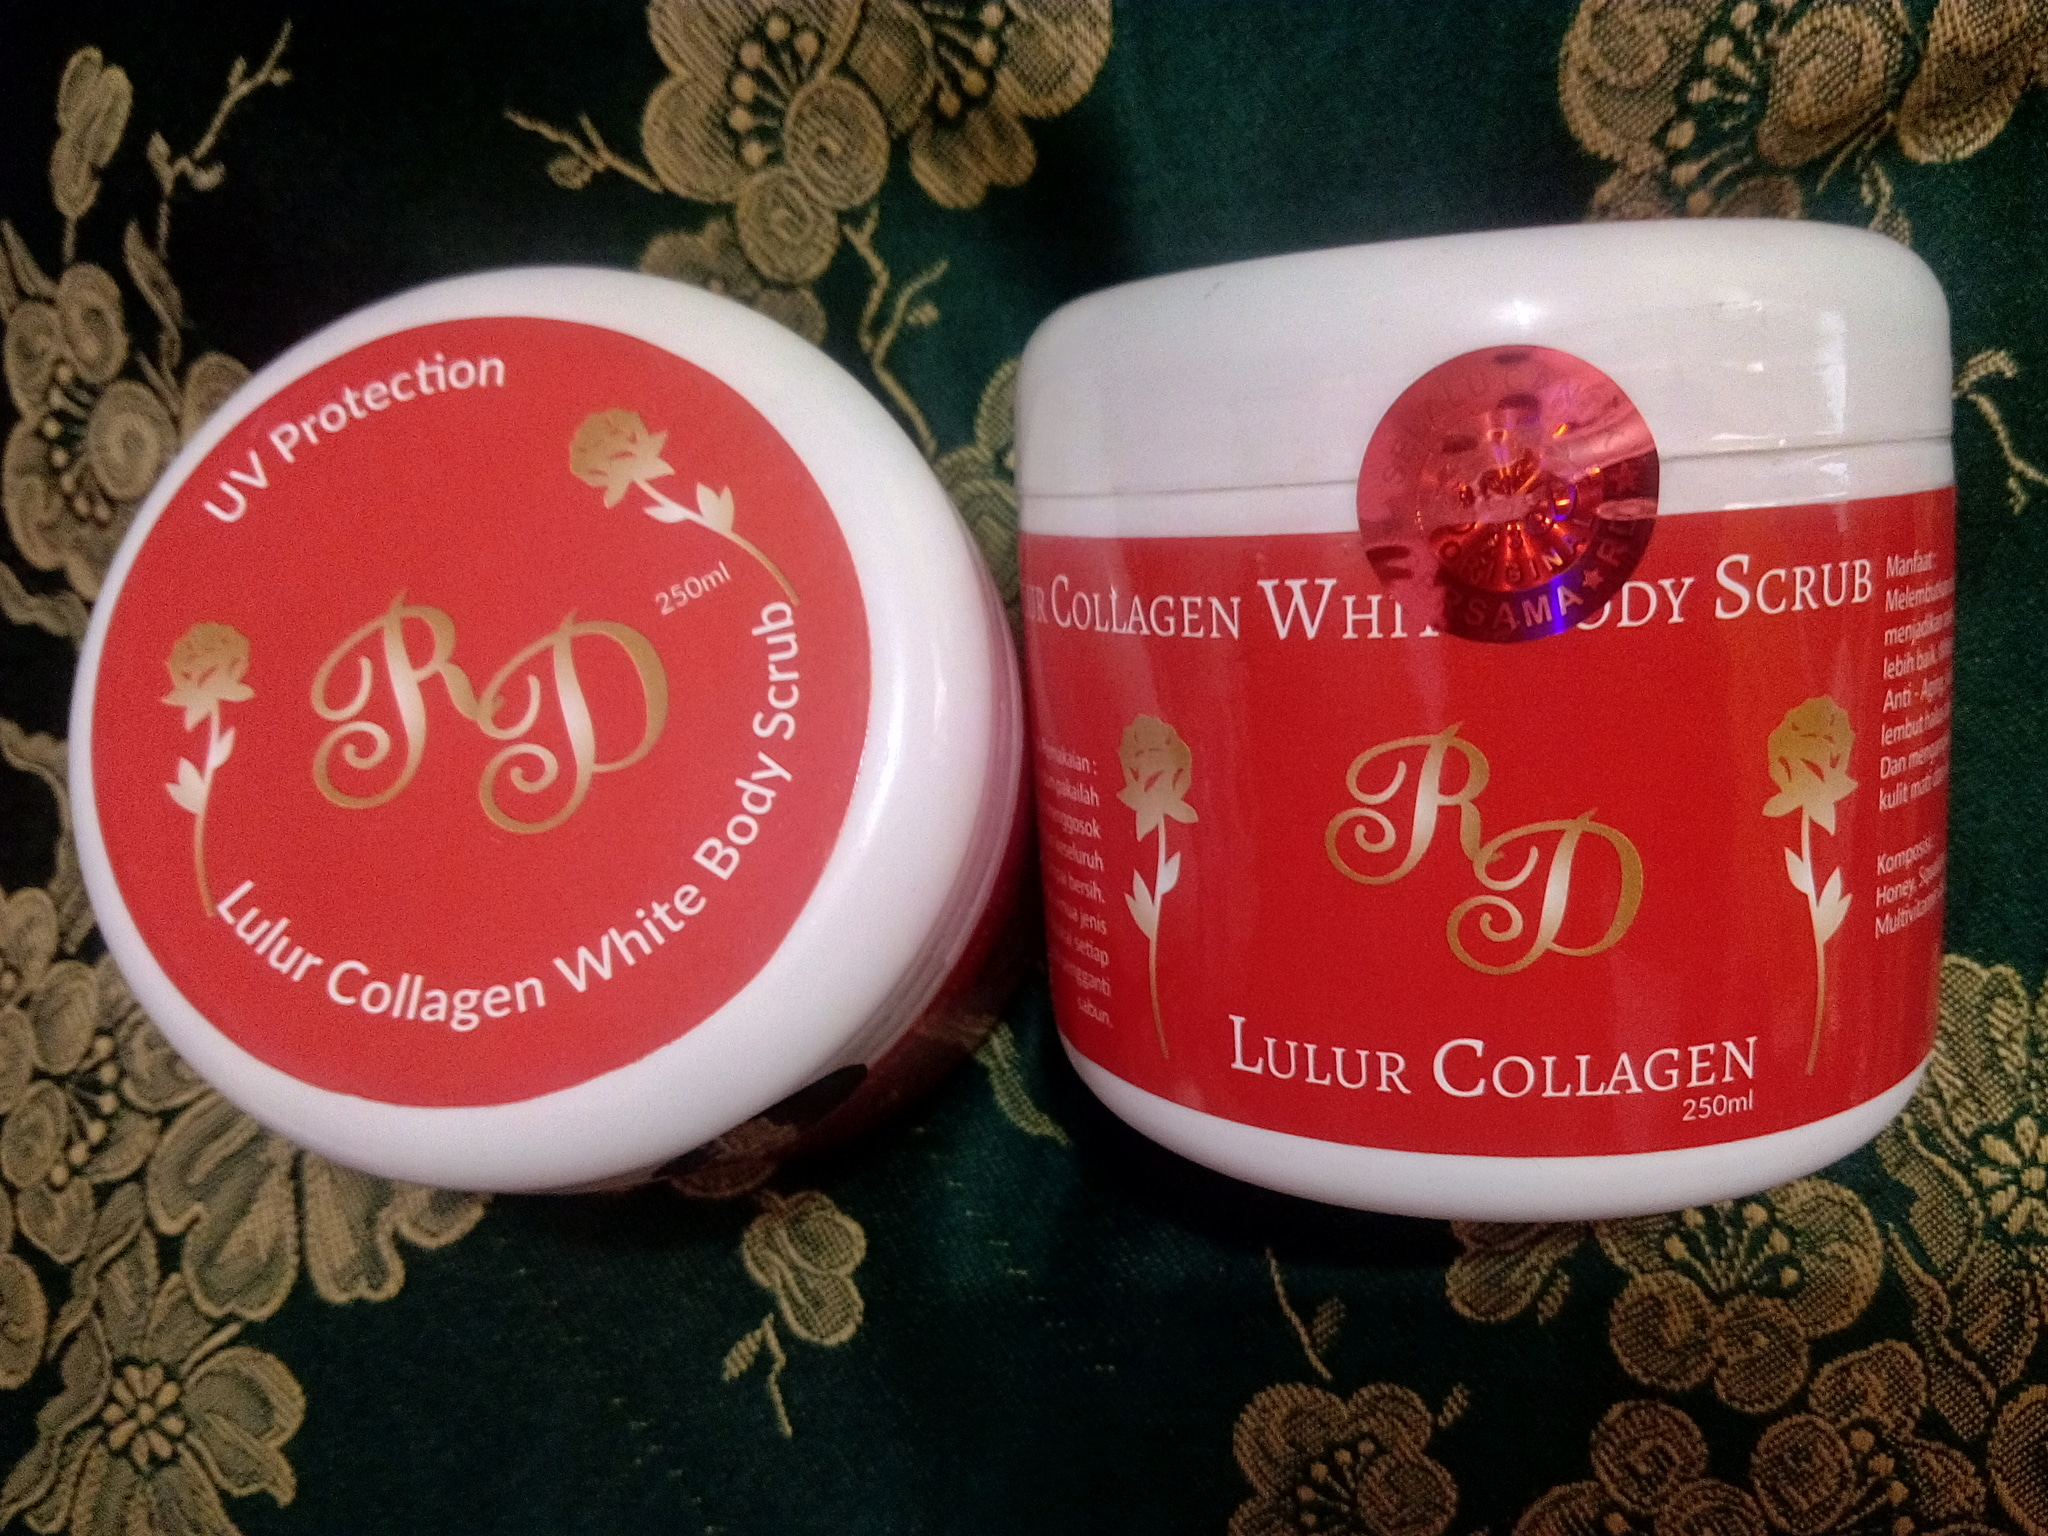 Jual Lulur RD Collagen Whitening Body Scrub Asli 100% Original Termurah